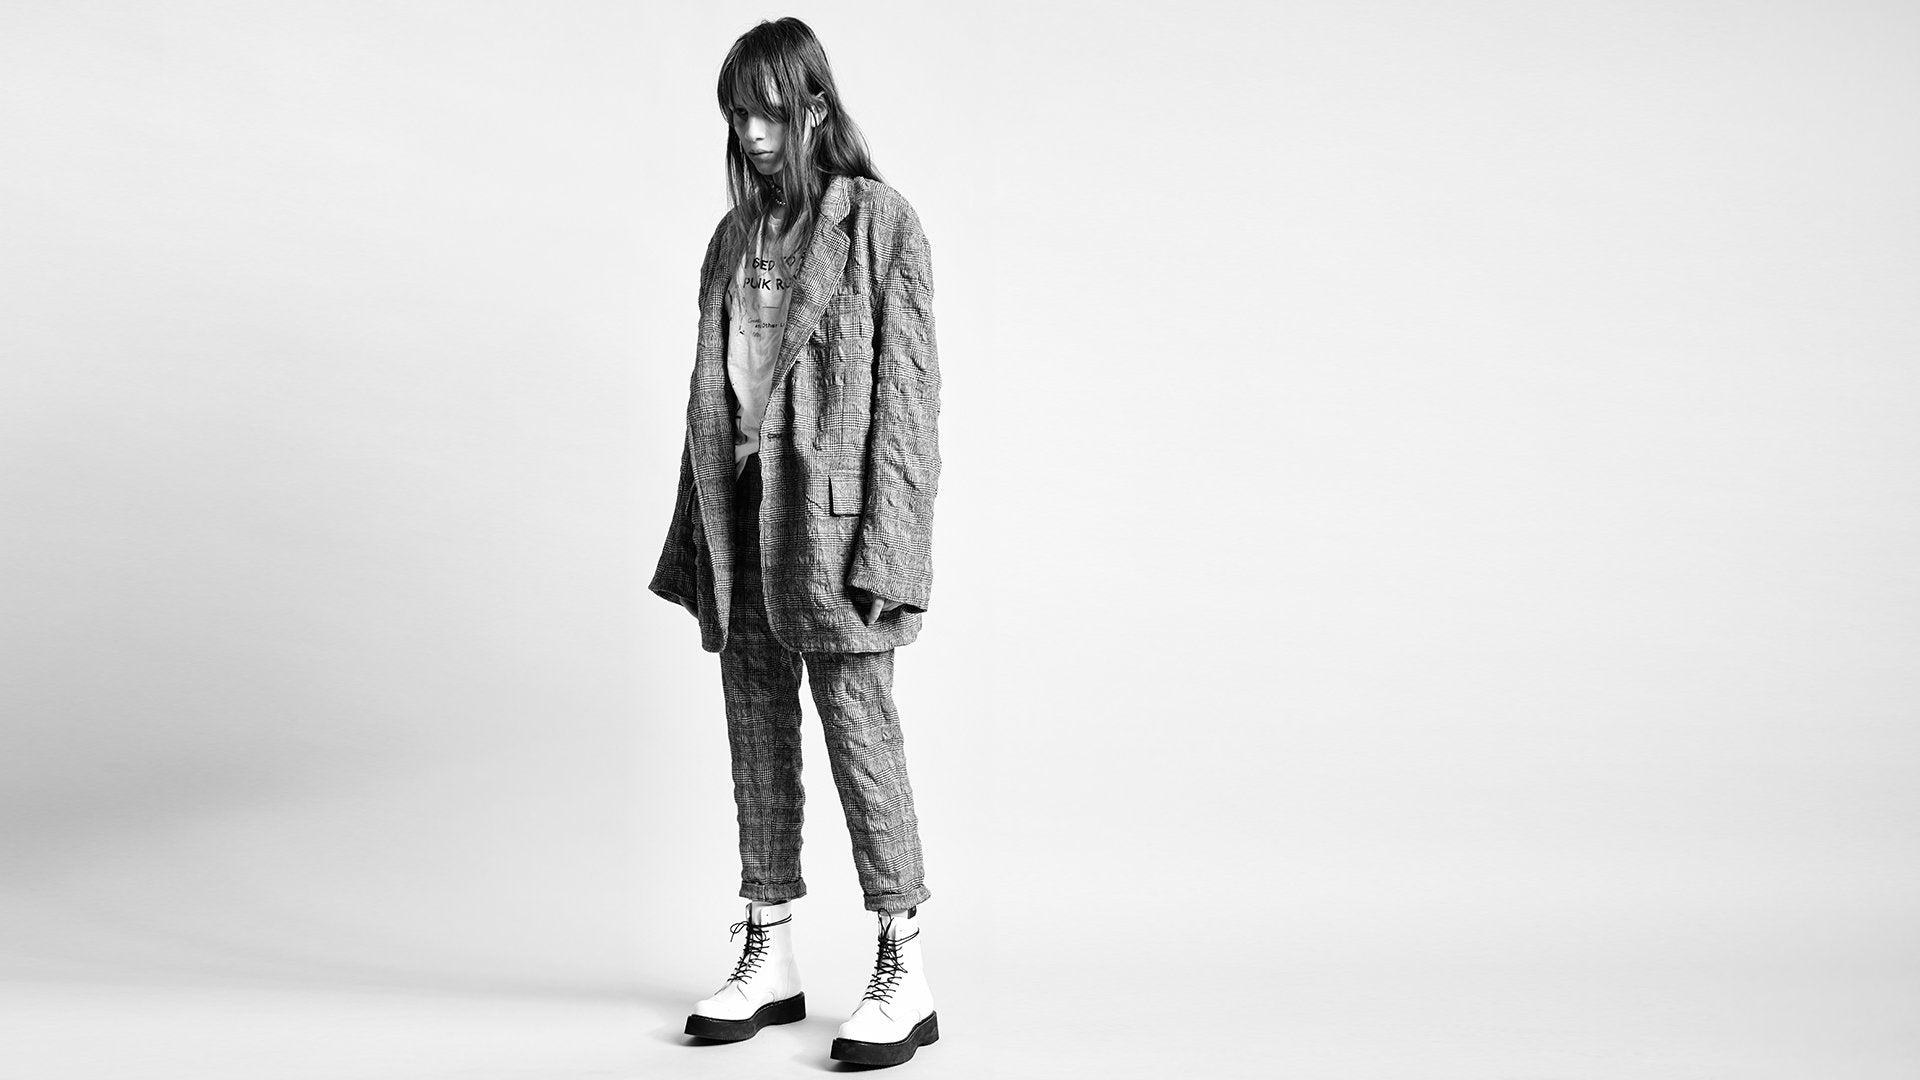 Womens PF18 Lookbook Image 12